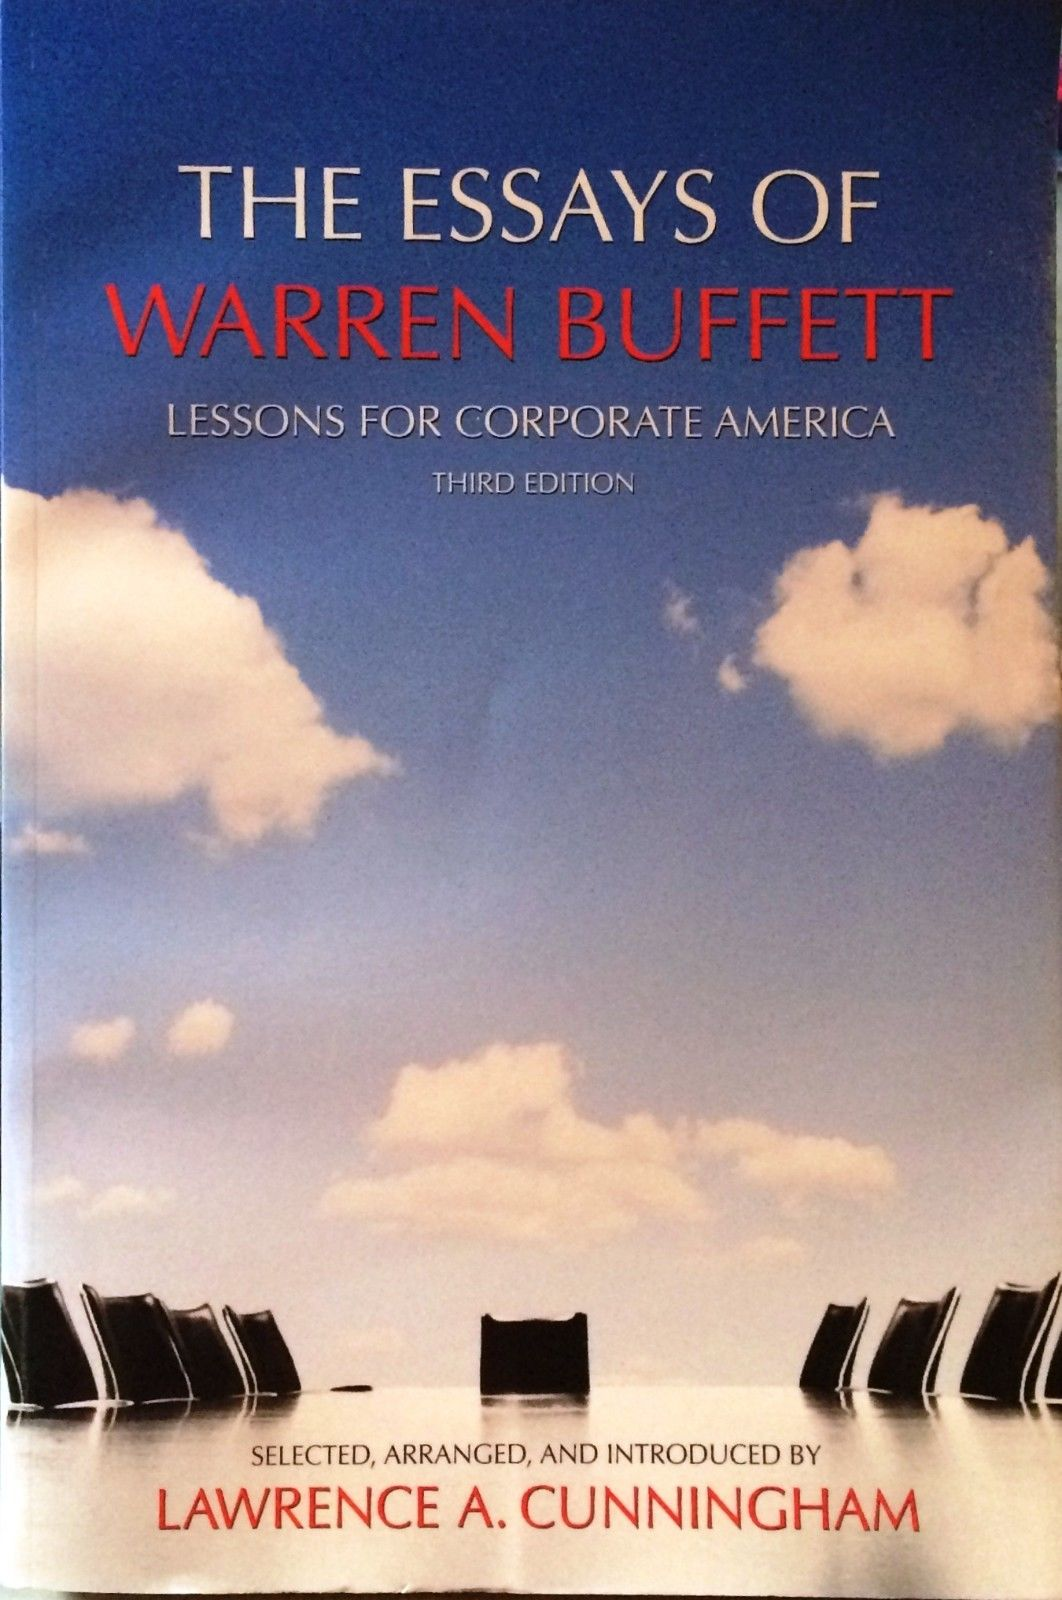 014 S L1600 Essay Example The Essays Of Warren Buffett Lessons For Corporate Remarkable America Third Edition 3rd Second Pdf Audio Book Full